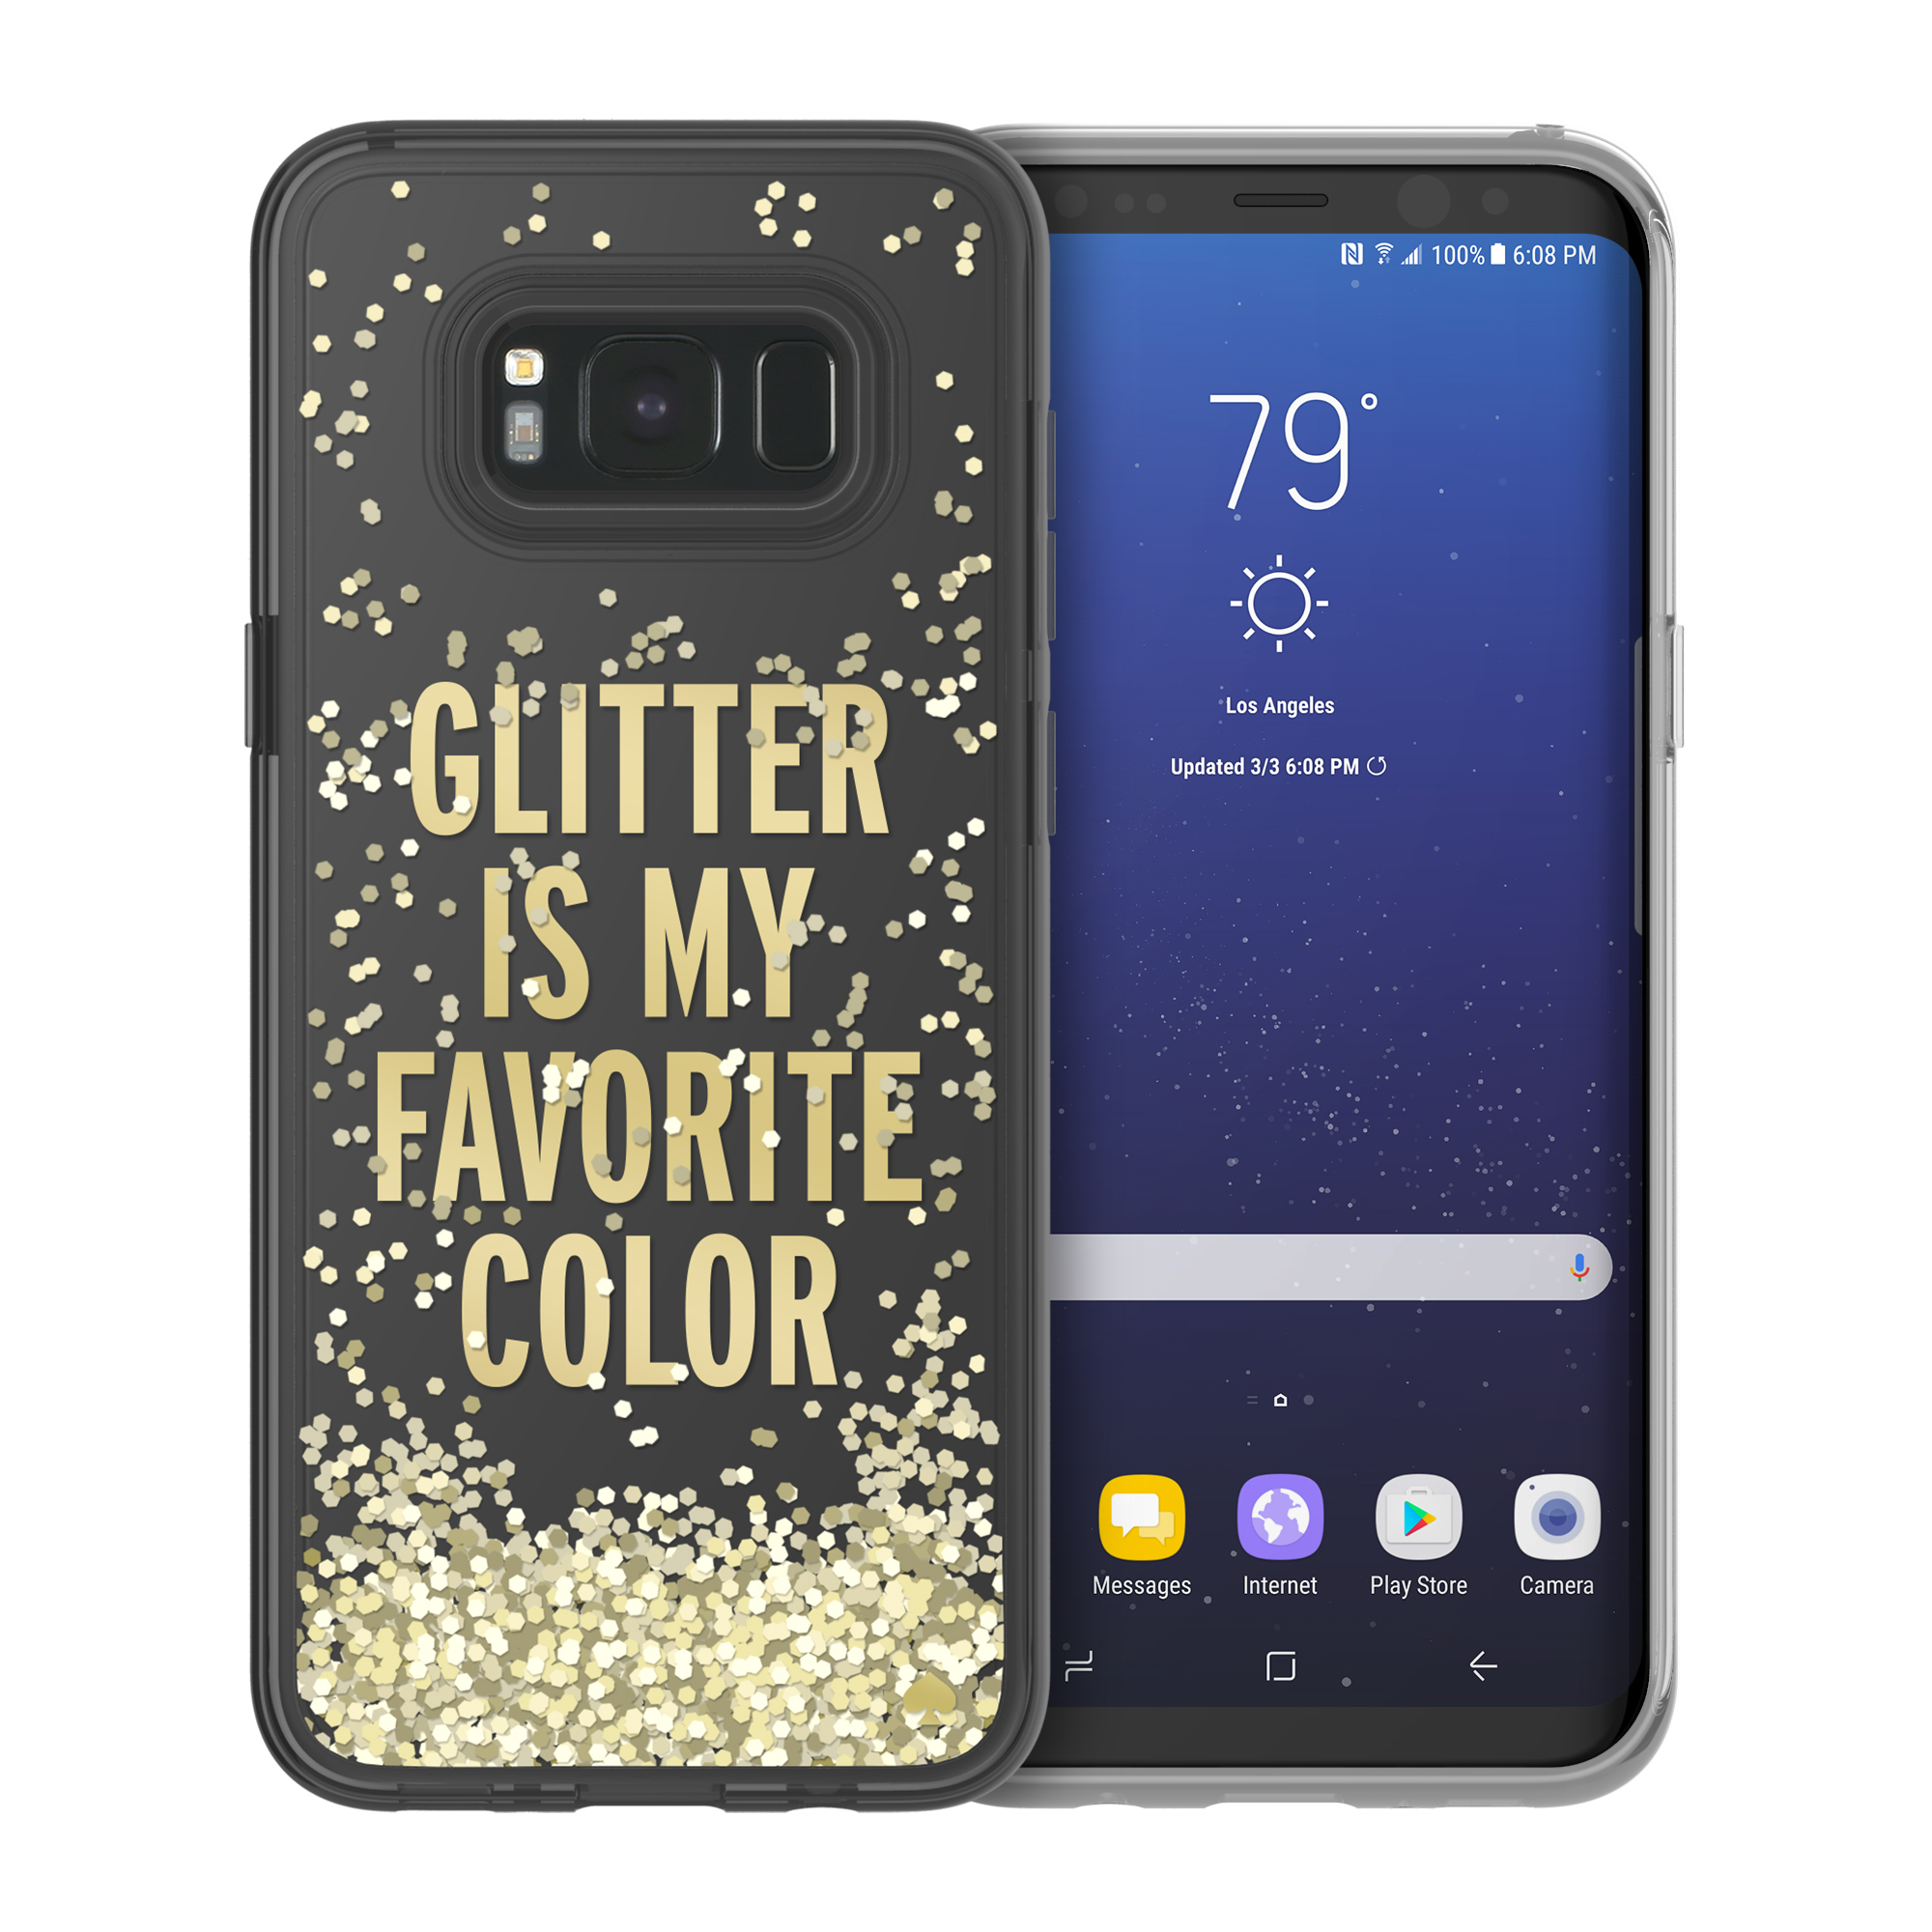 huge discount 3d2f2 1d69a Kate Spade New York Liquid Glitter Case for Samsung Galaxy S8+ - Glitter is  My Favorite Color/Chunky Gold Glitter/Clear